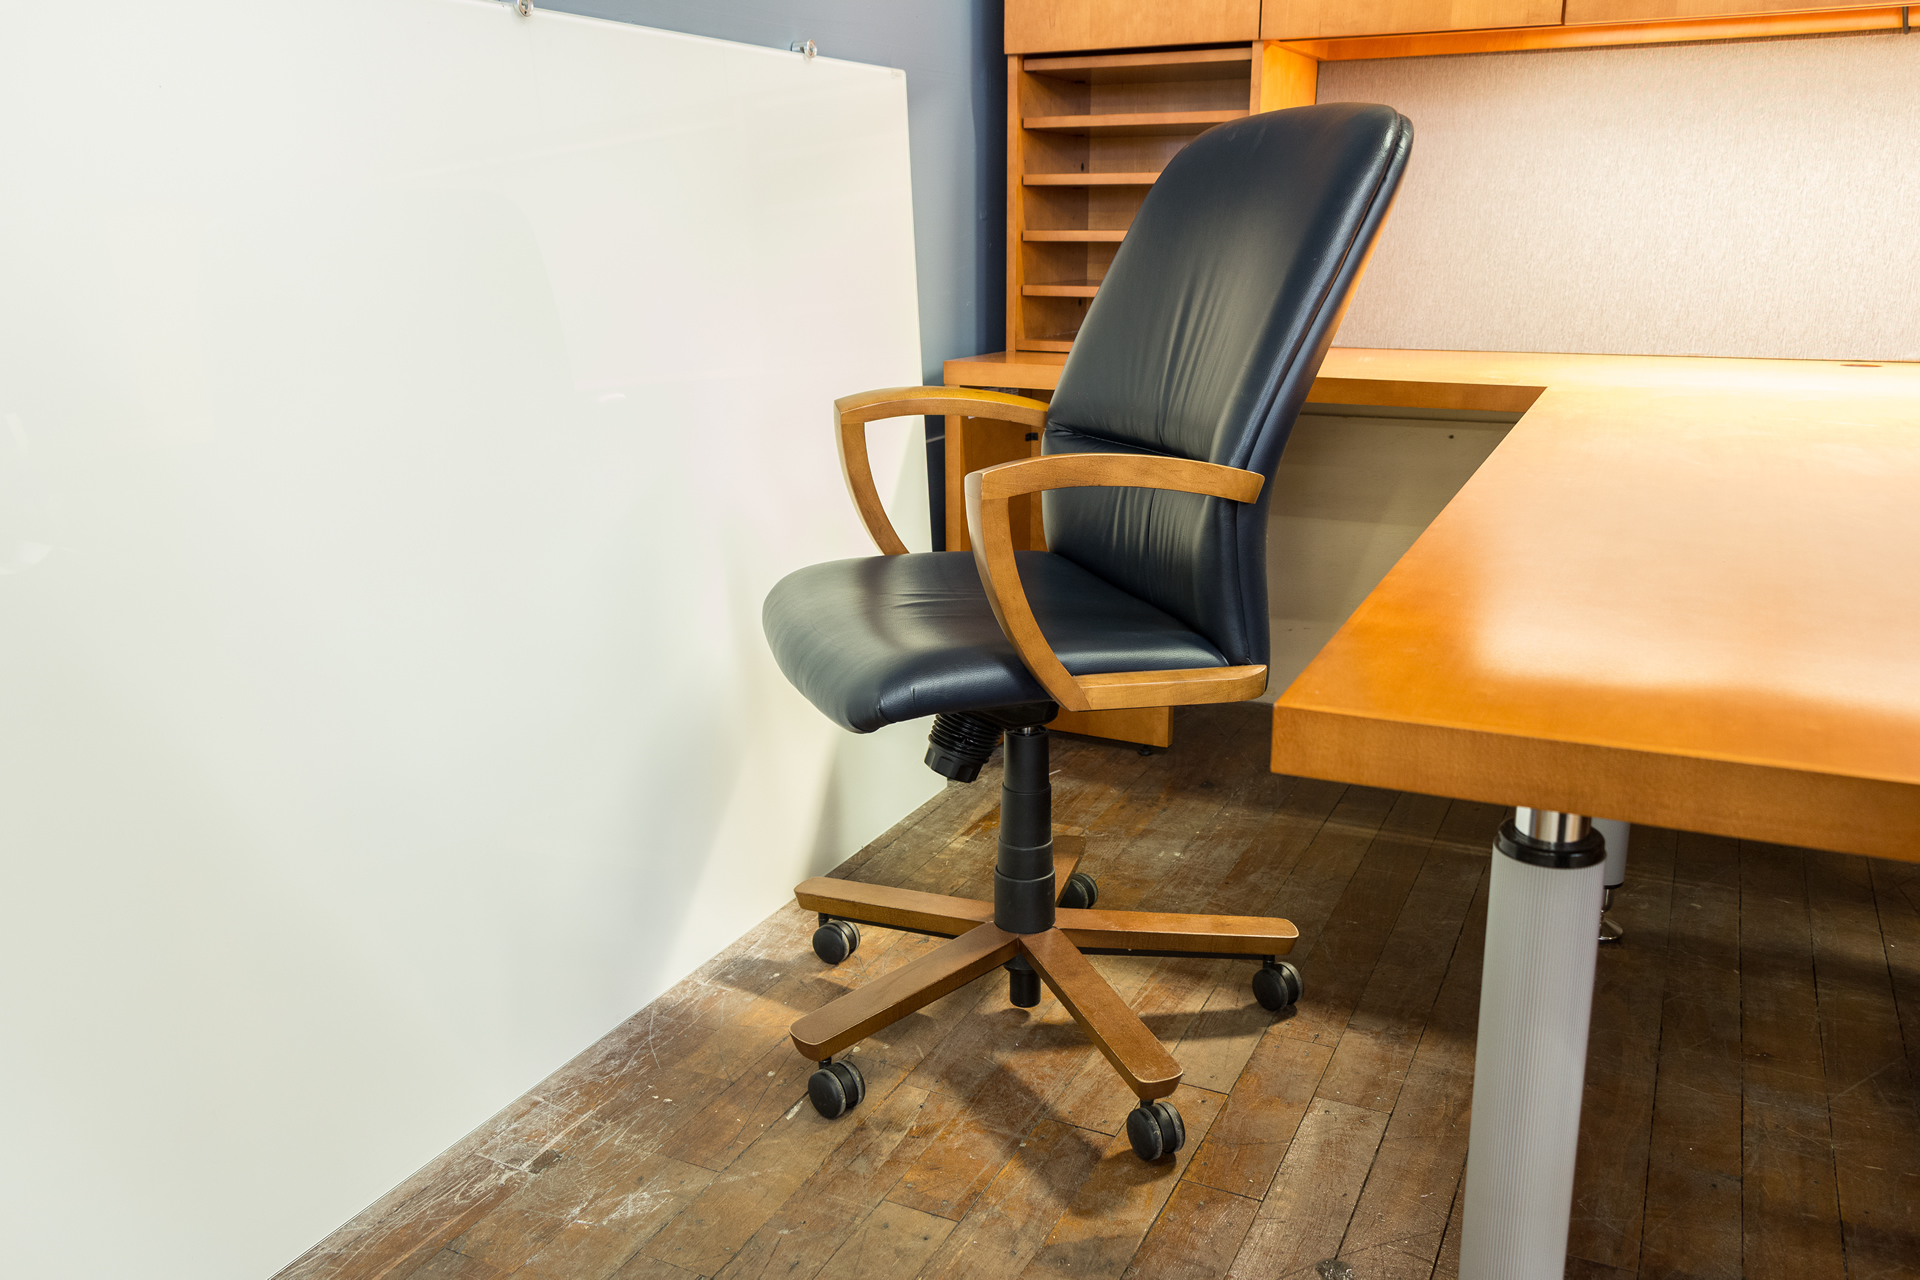 peartreeofficefurniture_peartreeofficefurniture_peartreeofficefurniture_kimball-triumph-leather-executive-conference-chairs-3.jpg